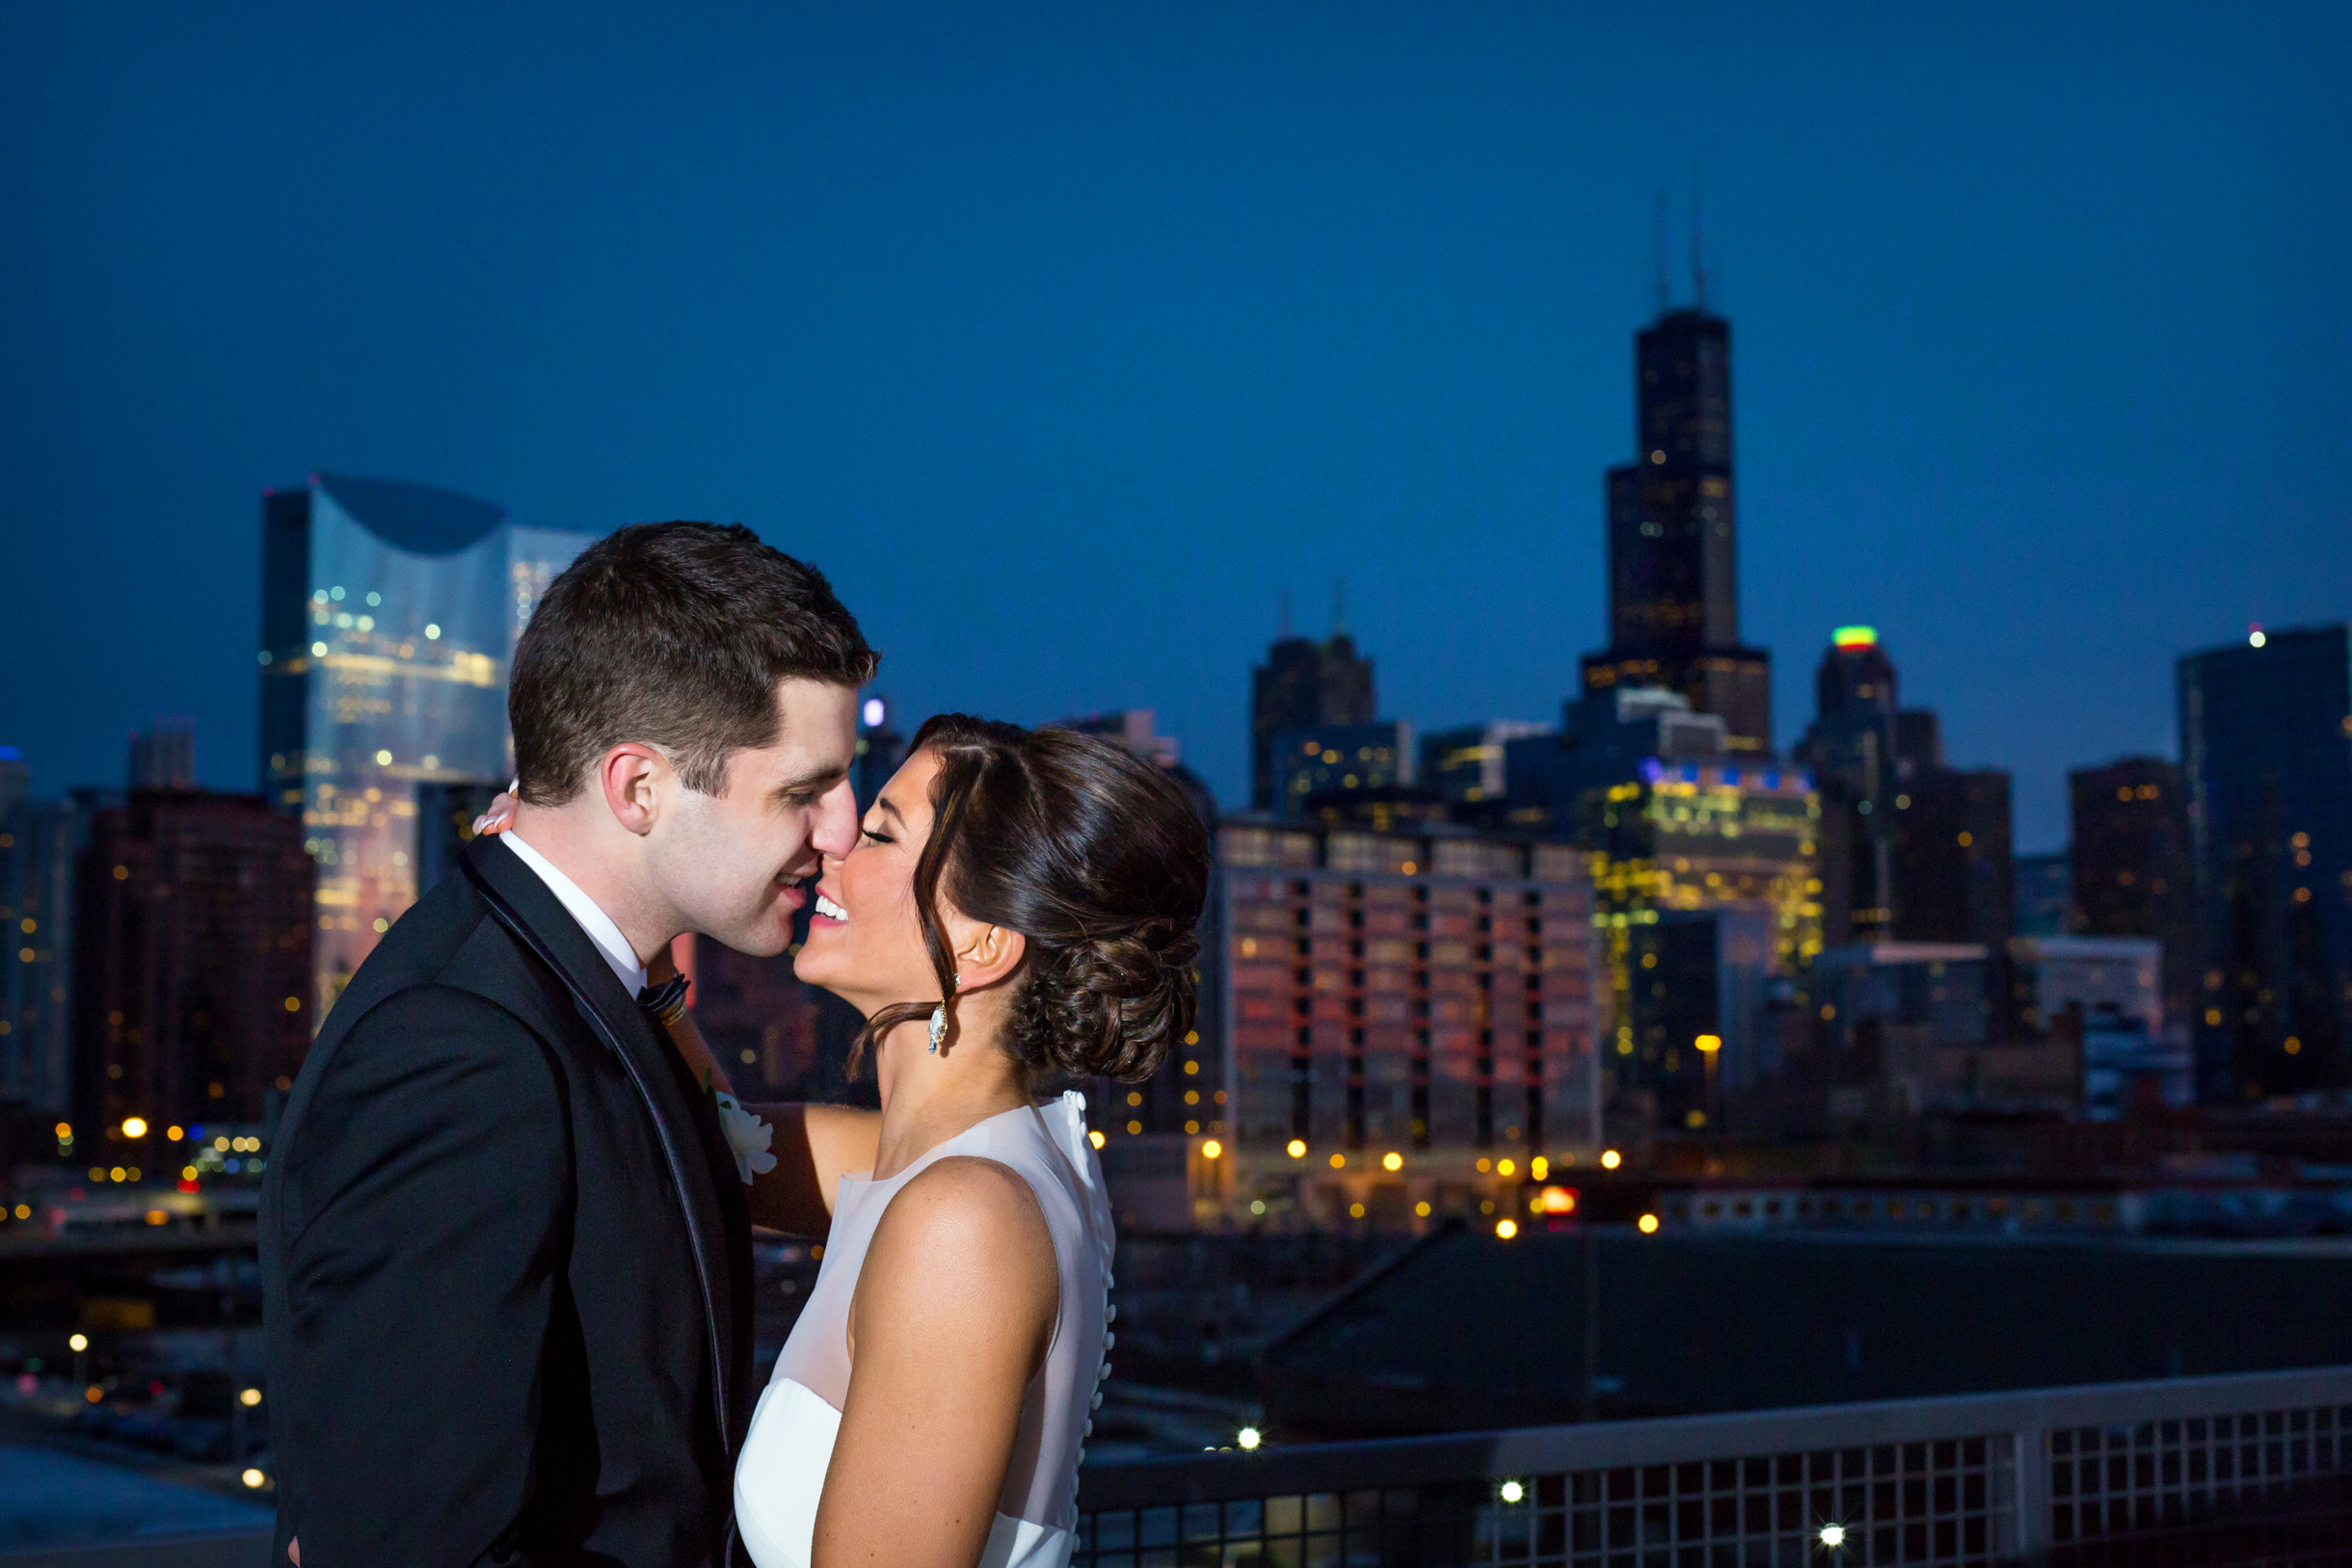 Rooftop photo of Bride and Groom kissing at sunset with Chicago buildings in the background-250